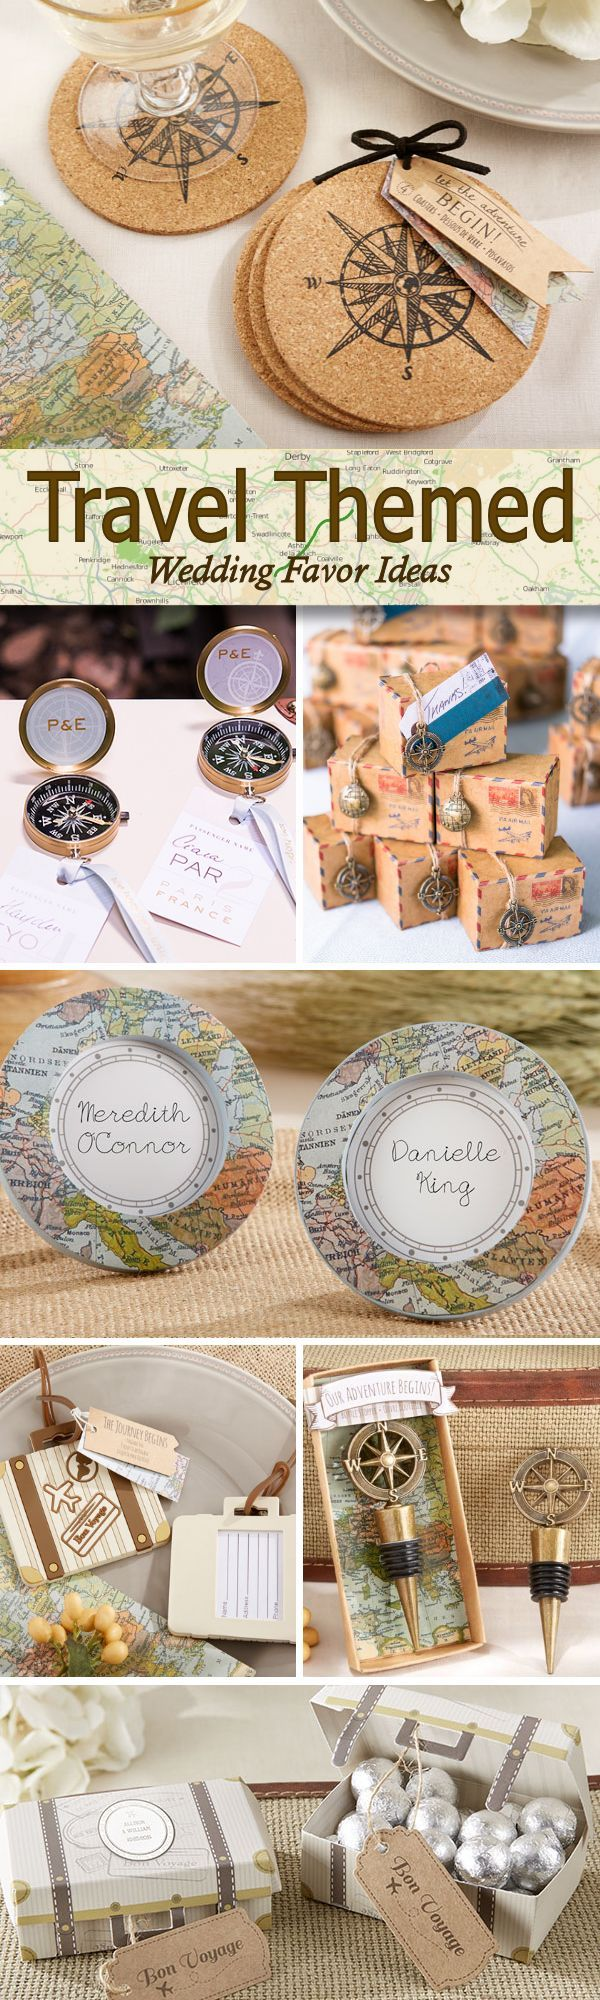 ... wedding? Check out these 50 Fun Travel Themed Wedding Favor Ideas